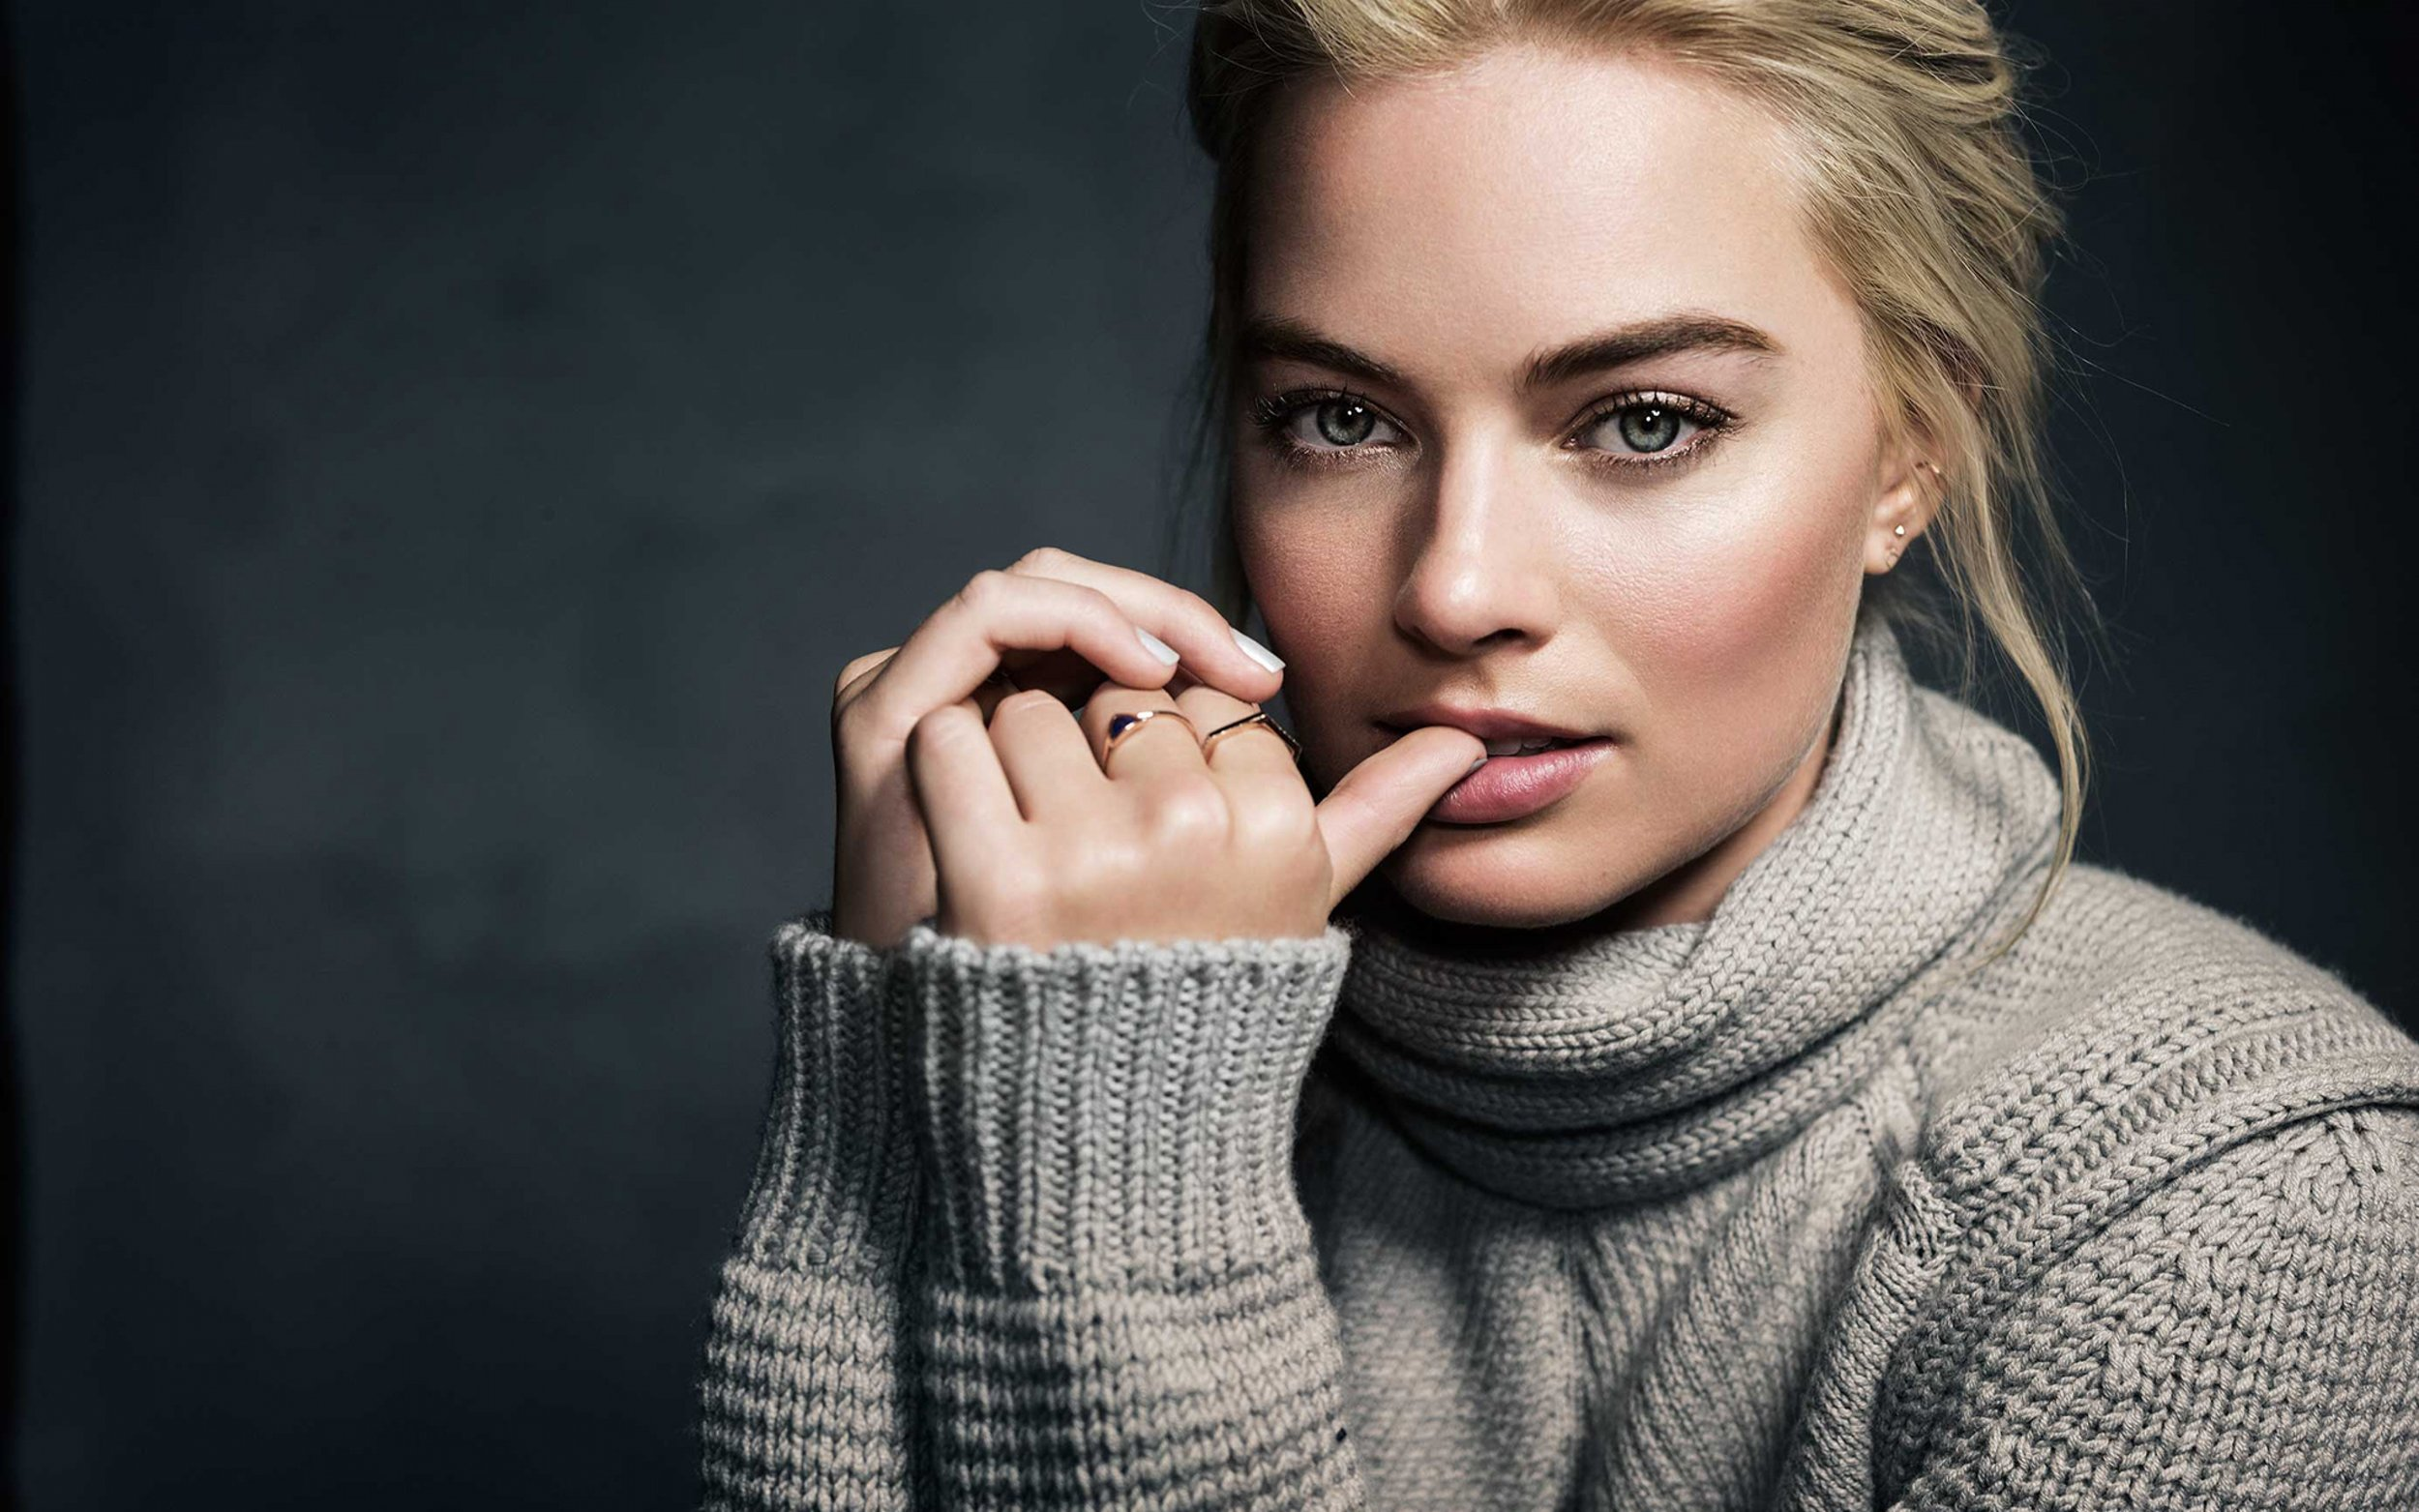 MARGOT ROBBIE GIVES VOICE TO A LAW STUDENT